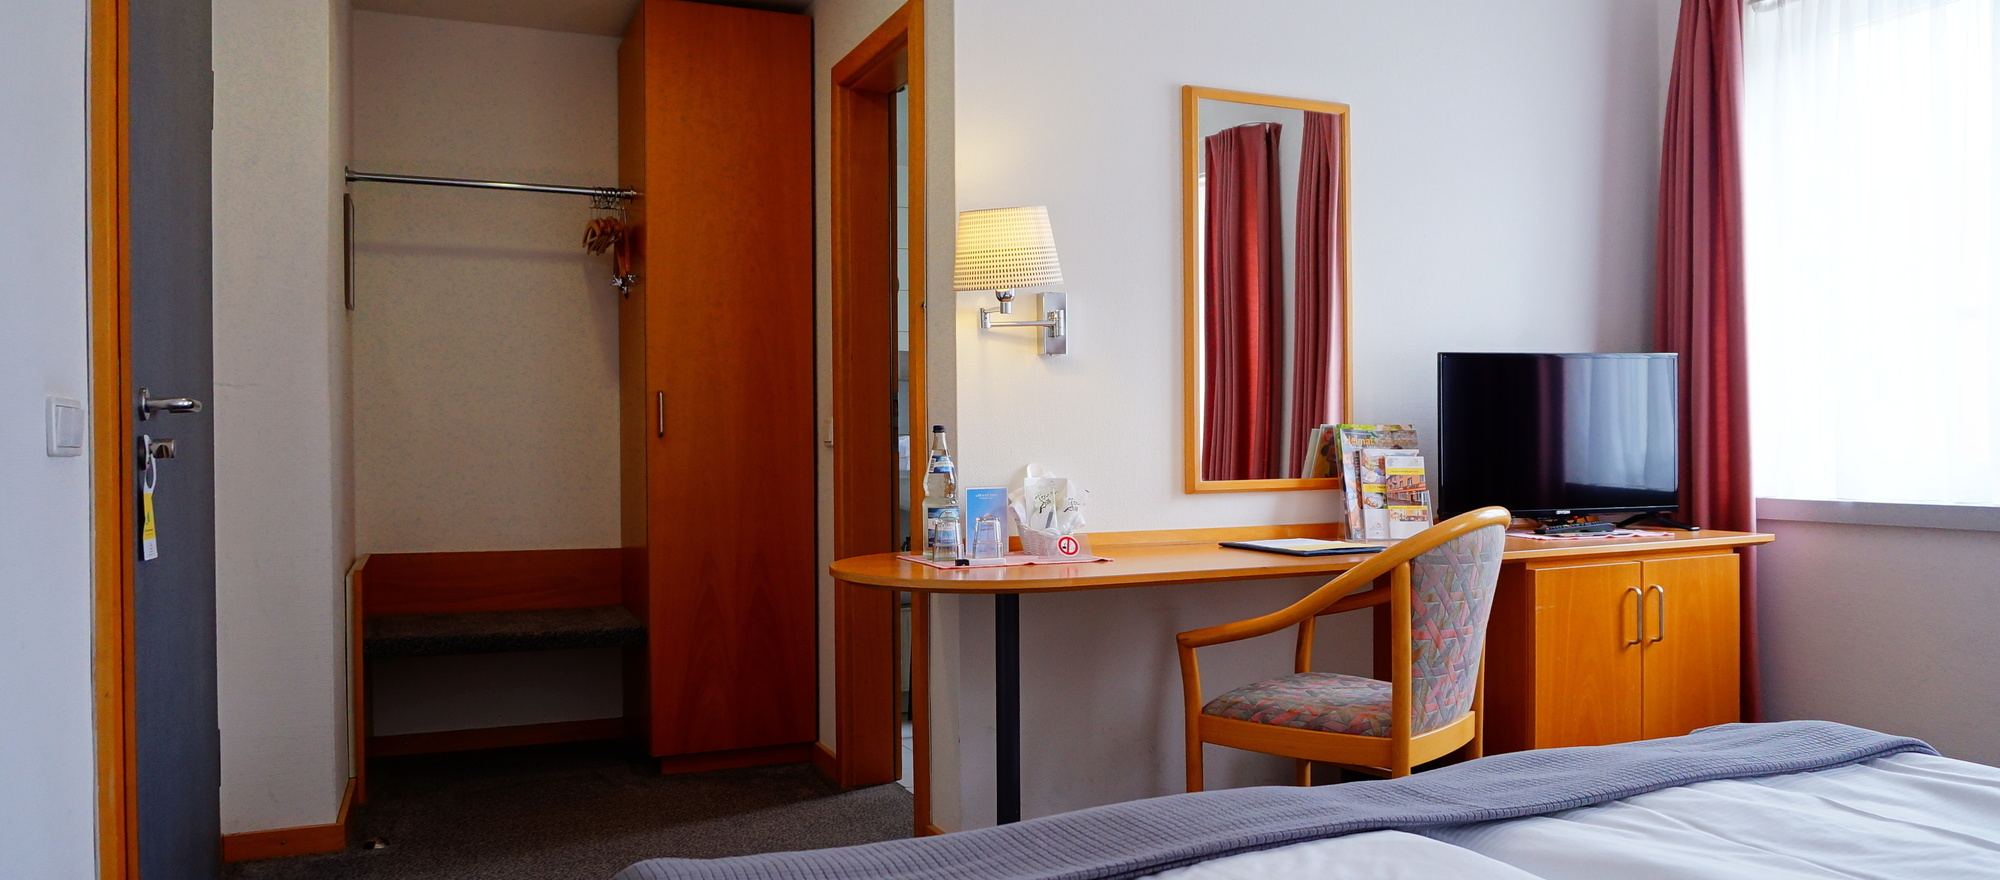 Rooms in the 3-star-superior hotel Ringhotel Altstadt garni in Guestrow